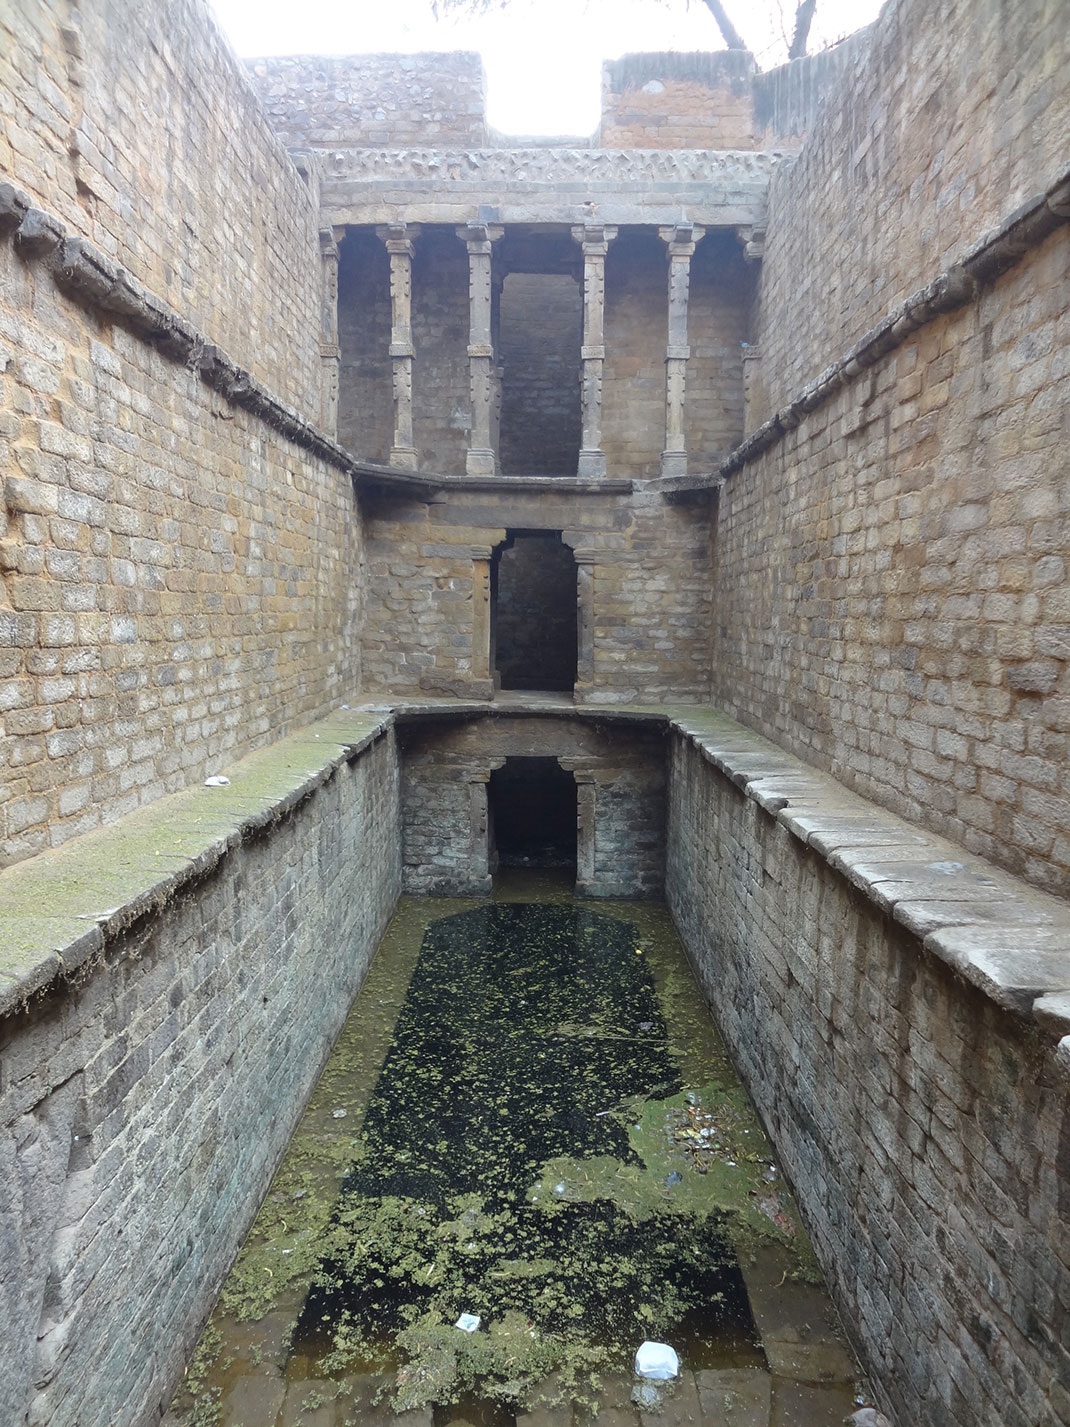 Admire These 2000 Year Old Somptous Buildings In India Destined To Disappear-35